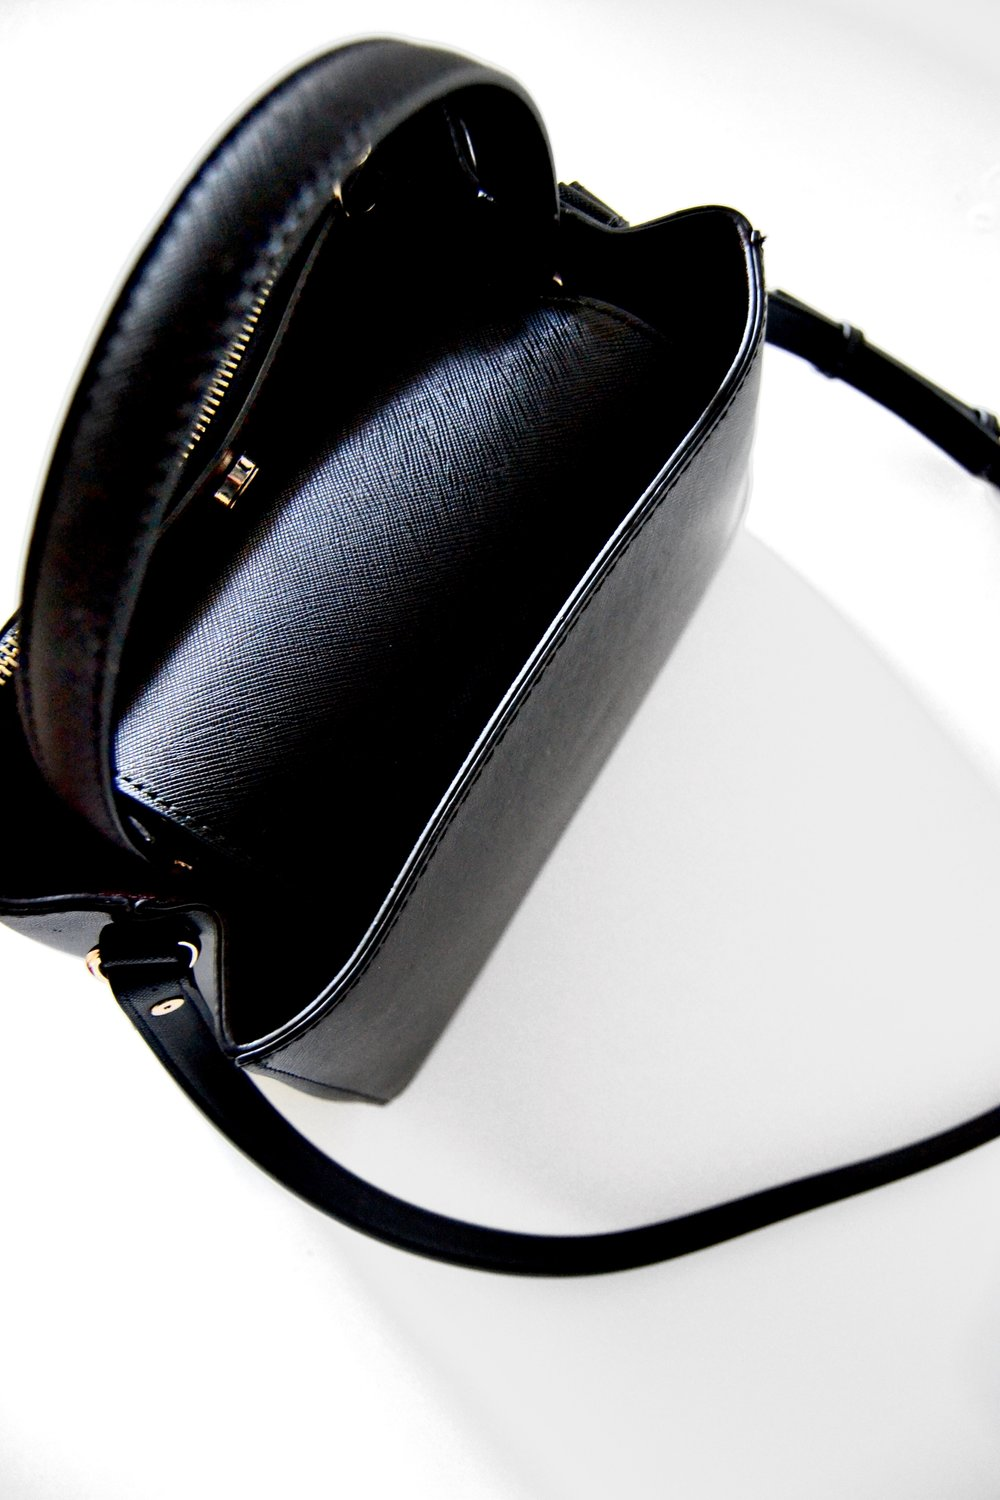 Bag from Zara - I am currently using the medium-sized shopper from Zara. It is also available in red and light grey.